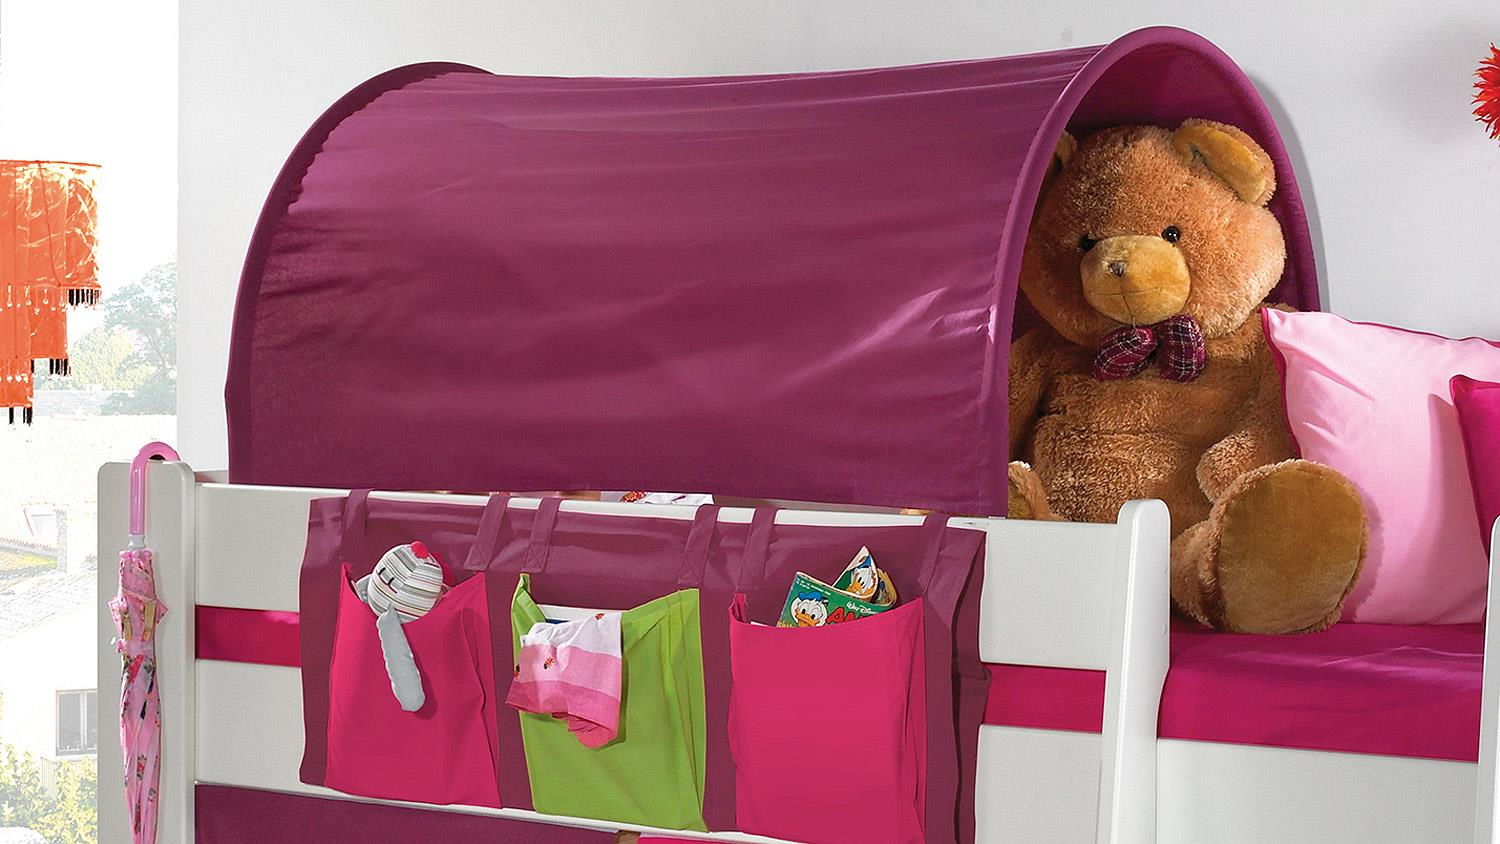 Etagenbett Steens : Hochbett steens great rutsche for kids with